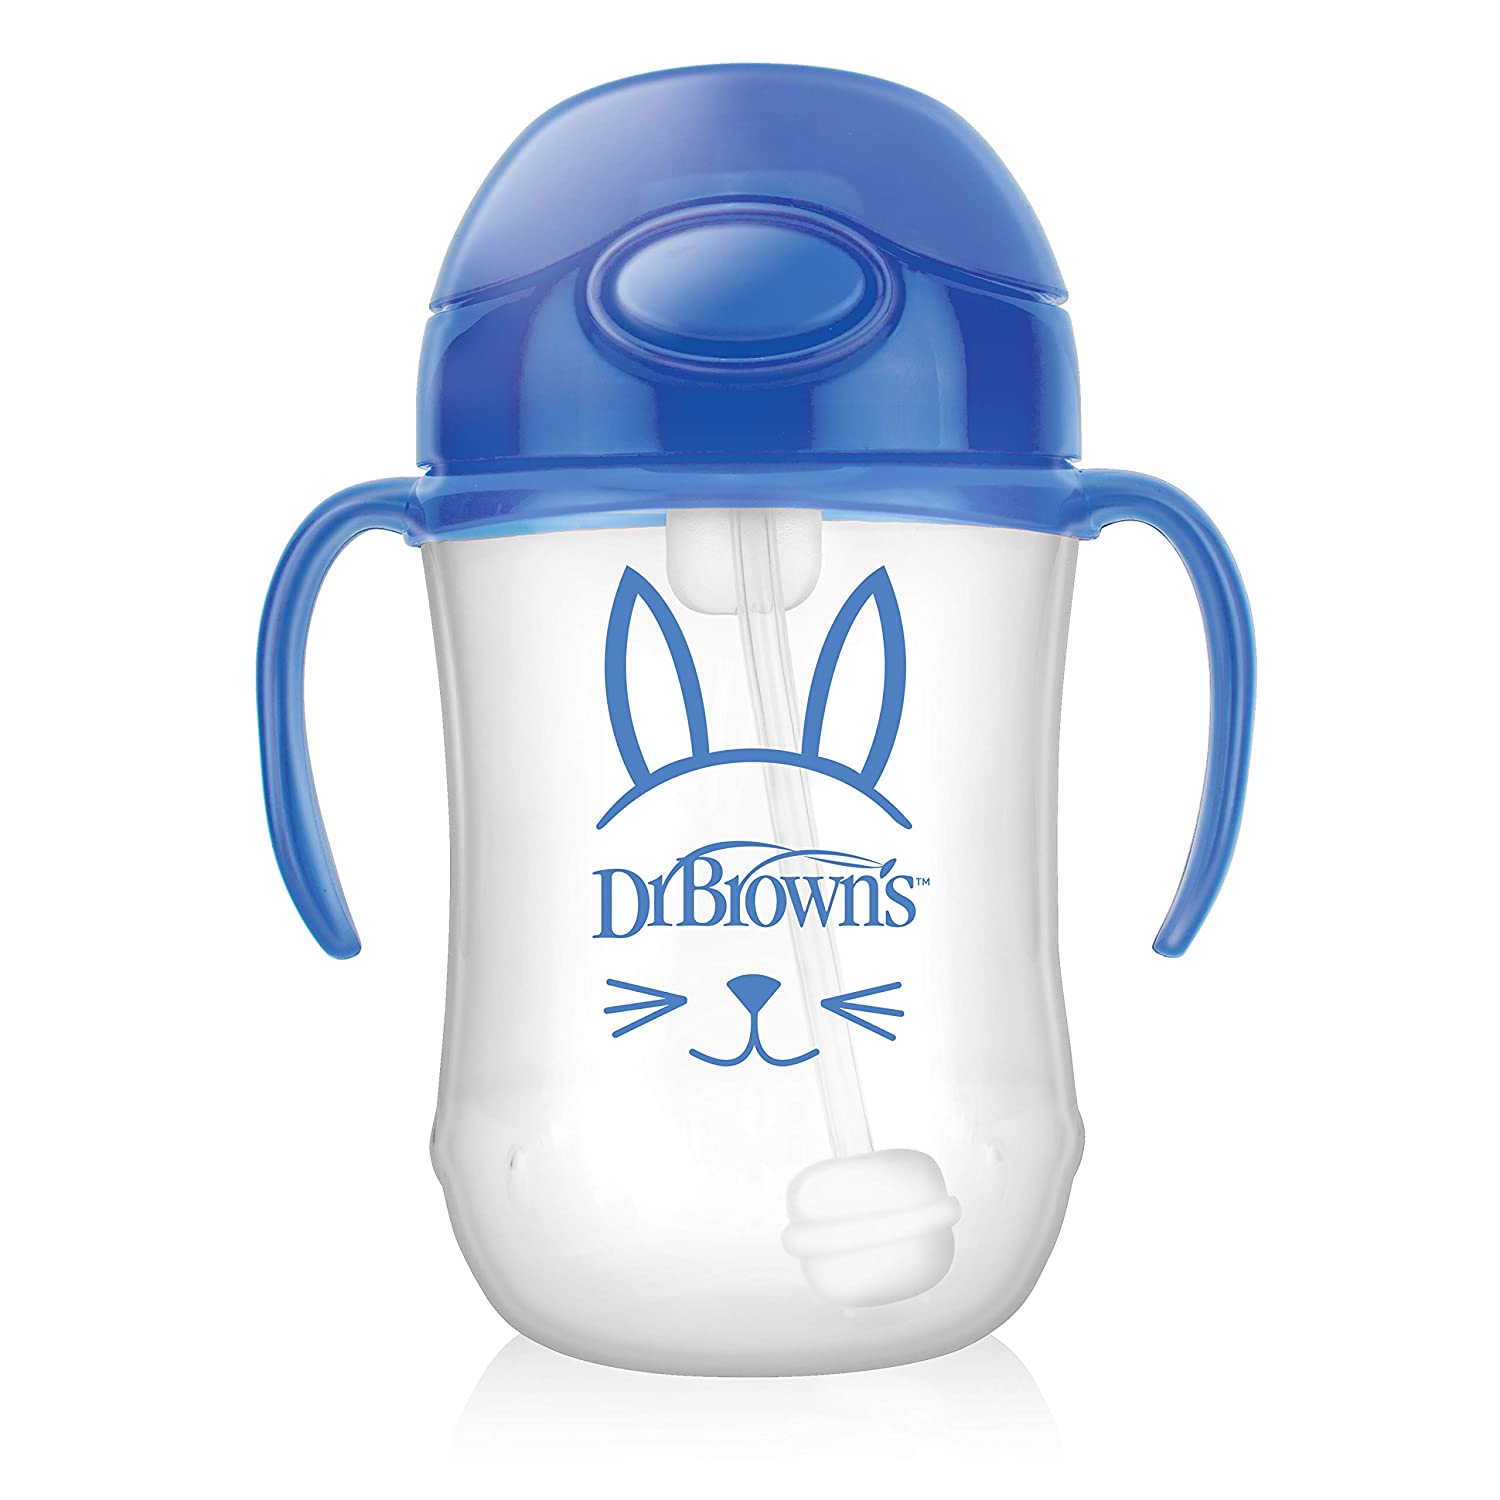 Dr. Brown's Baby's Phoenix Mall First Straw Cup Blue Ounce 6m+ online shopping - TC9101 9